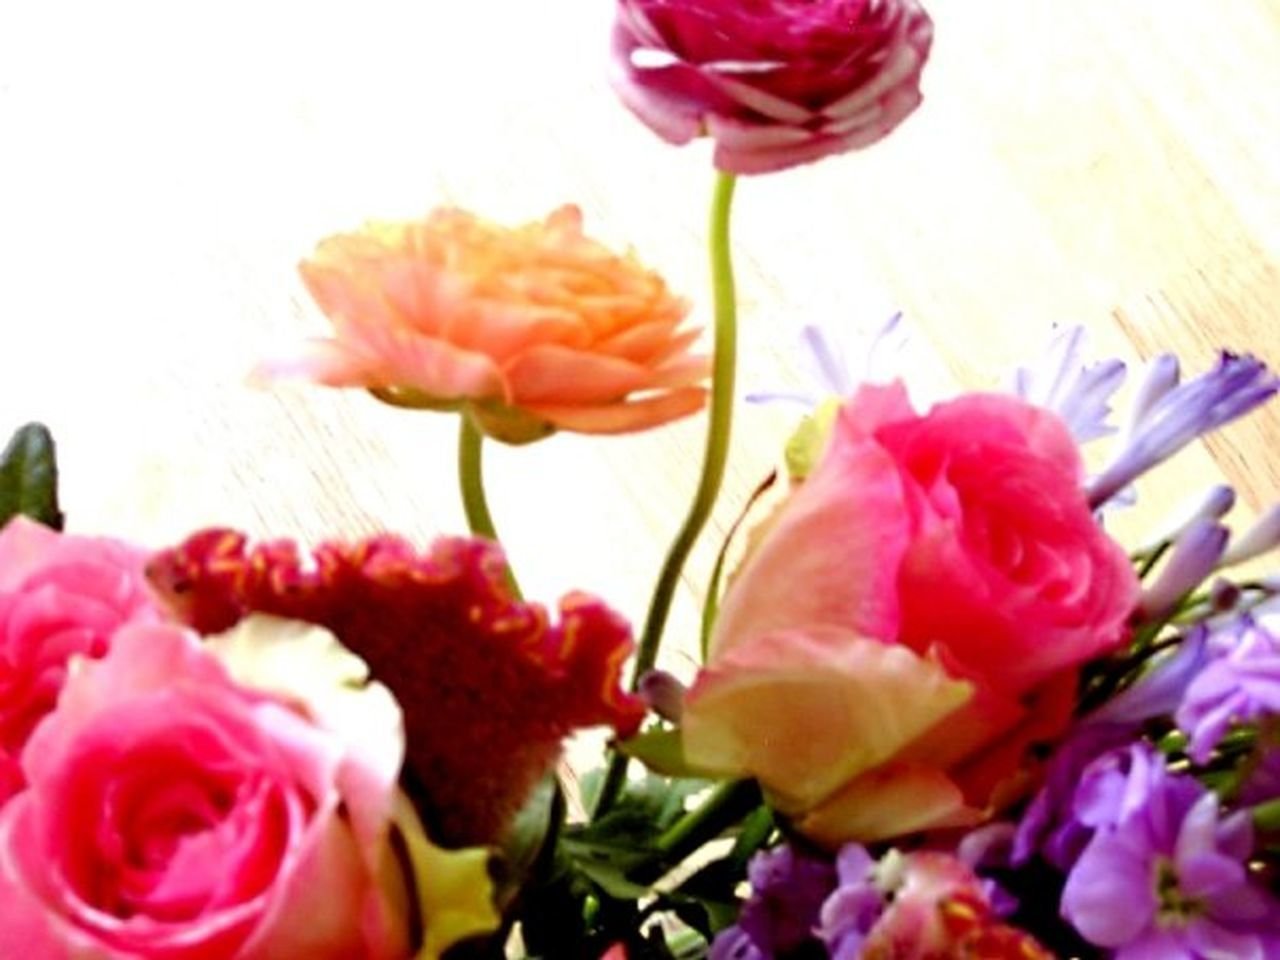 flower, petal, pink color, nature, beauty in nature, flower head, rose - flower, fragility, freshness, growth, no people, close-up, plant, peony, outdoors, day